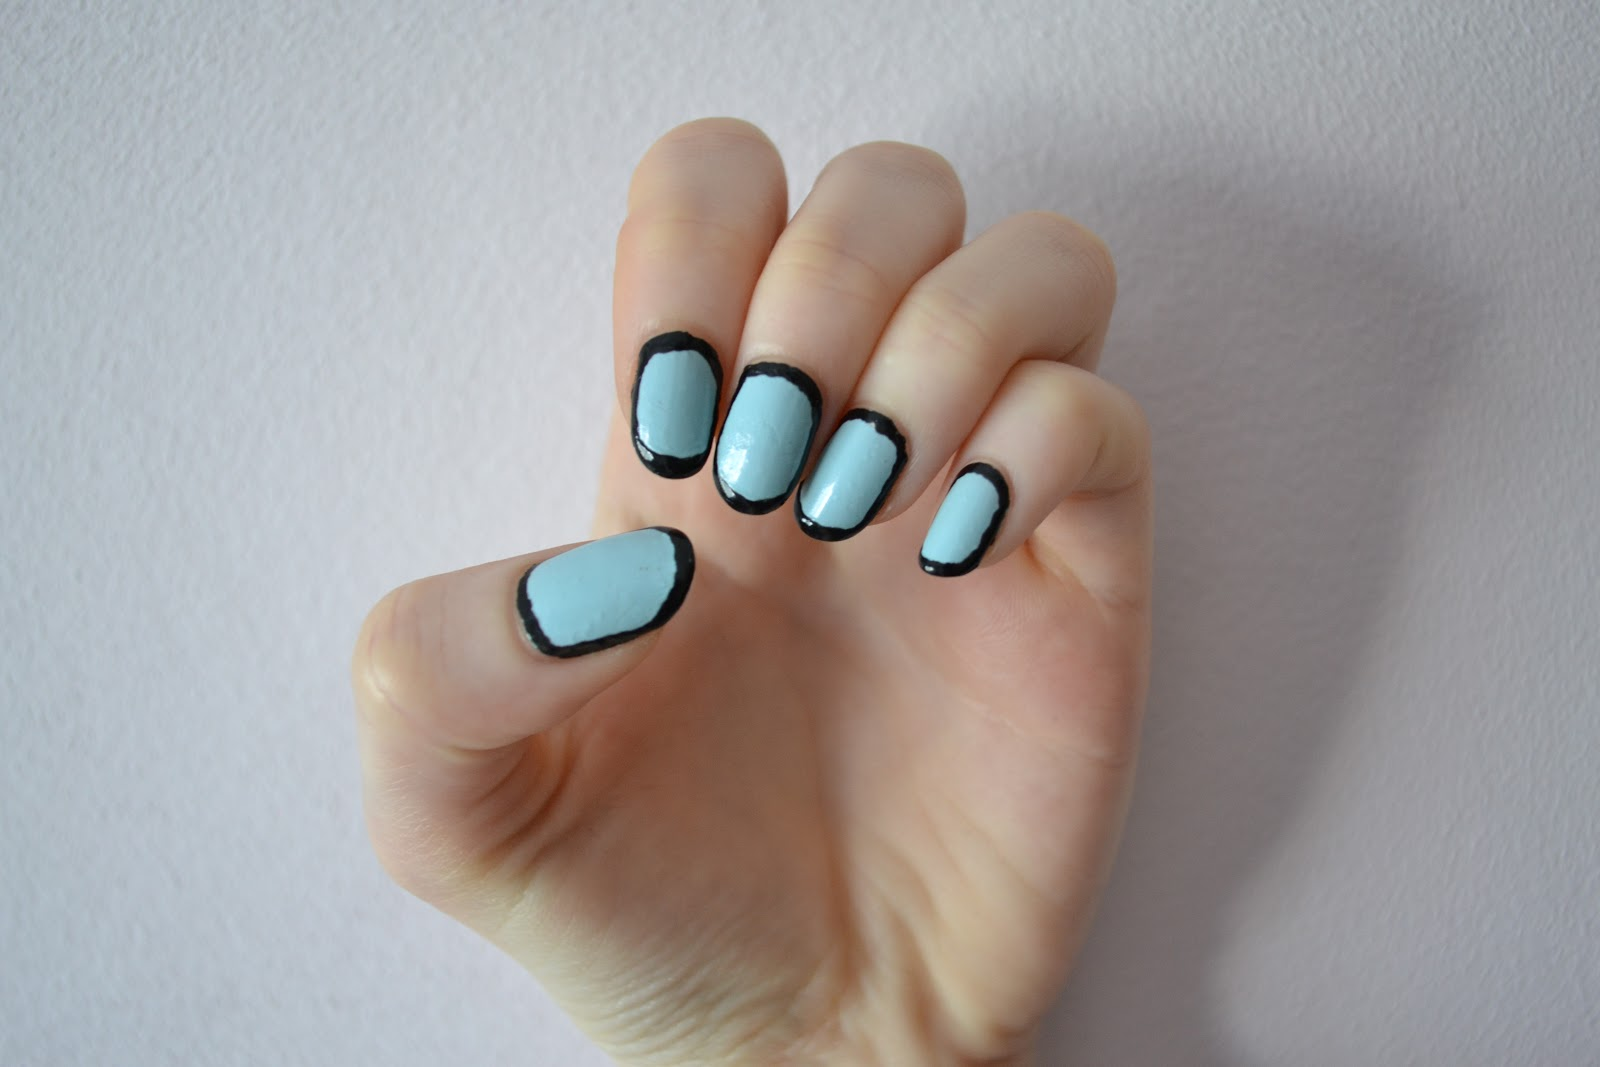 Easy Do At Home Nail Designs - Best site wiring harness